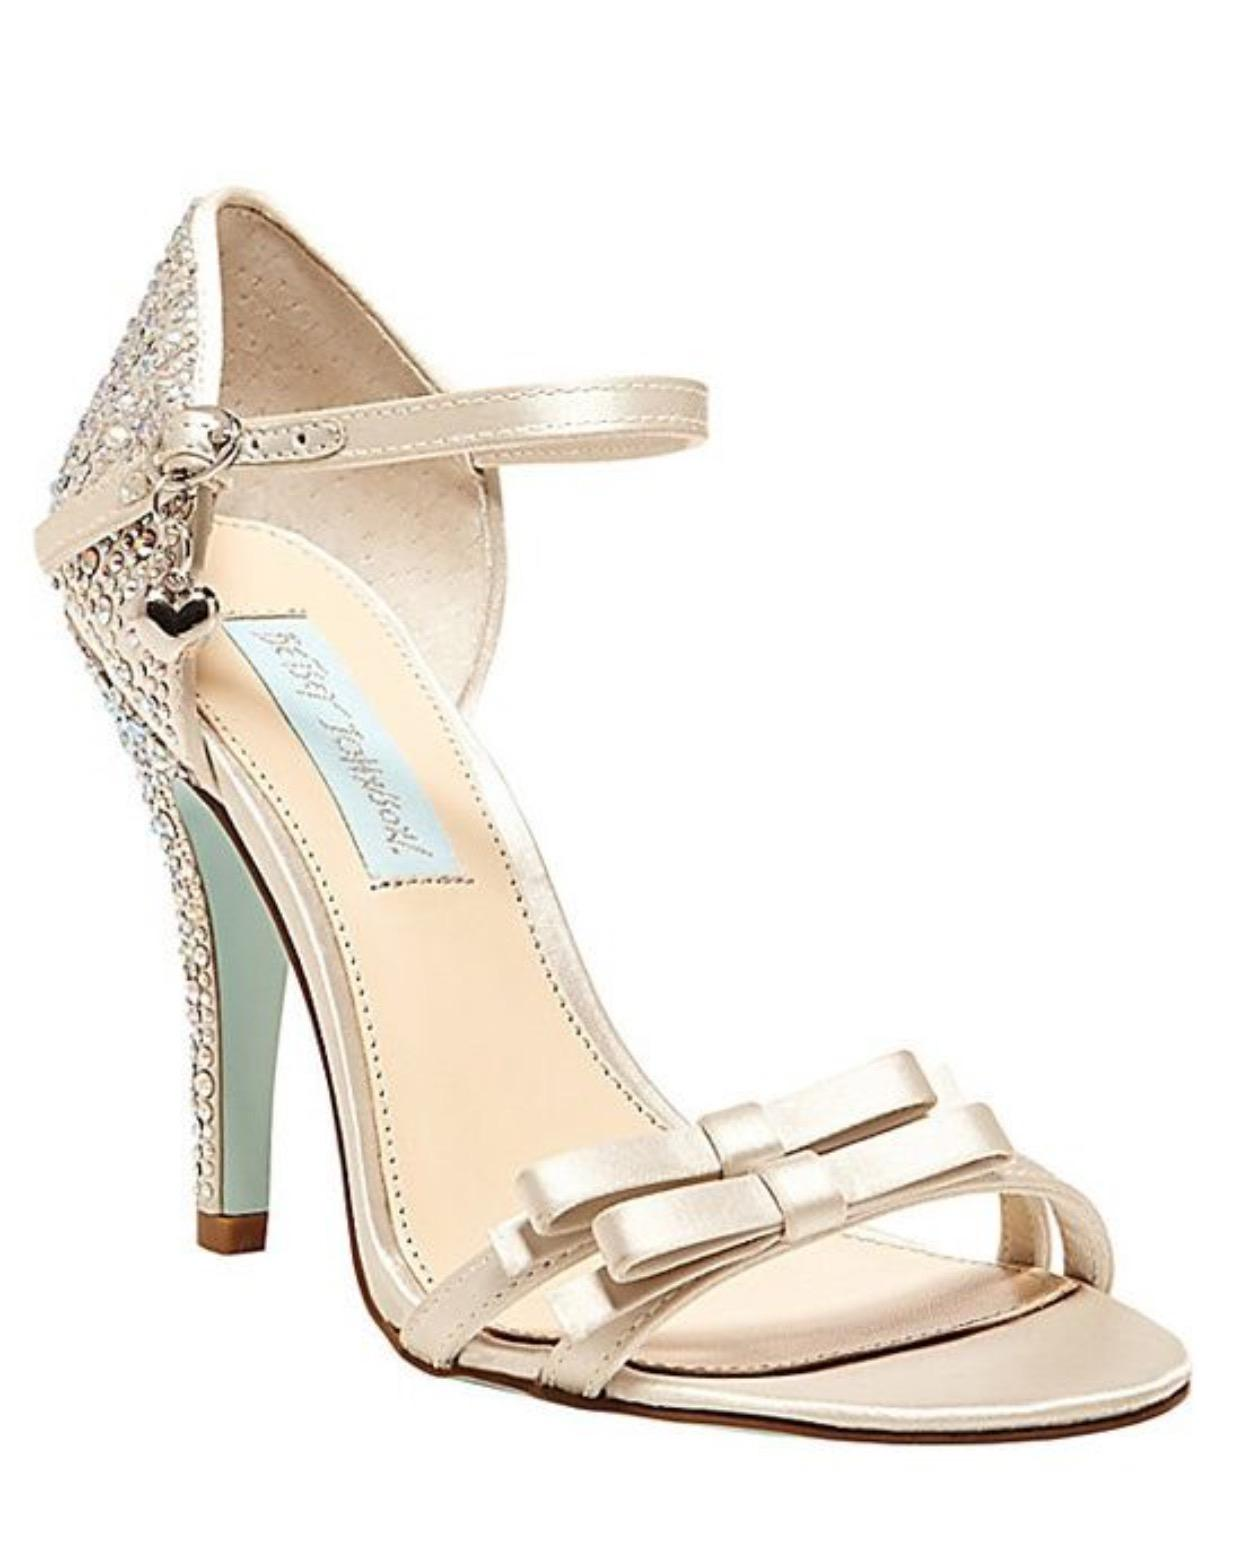 Betsey Johnson Heels Ivory Rhinestone Wedding Shoes On Sale 23% Off | Wedding Shoes On Sale